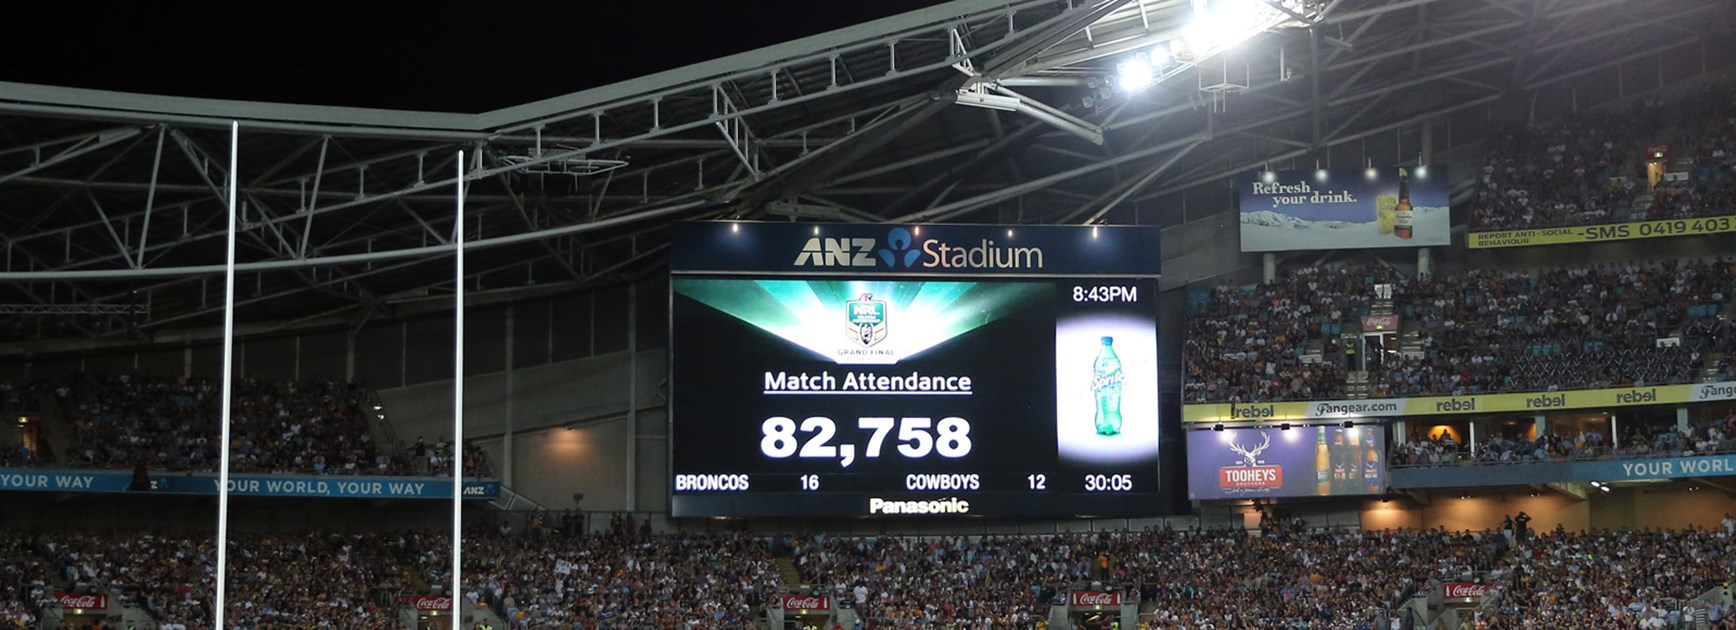 82,758 fans attended the 2015 NRL Telstra Premiership Grand Final at ANZ Stadium.